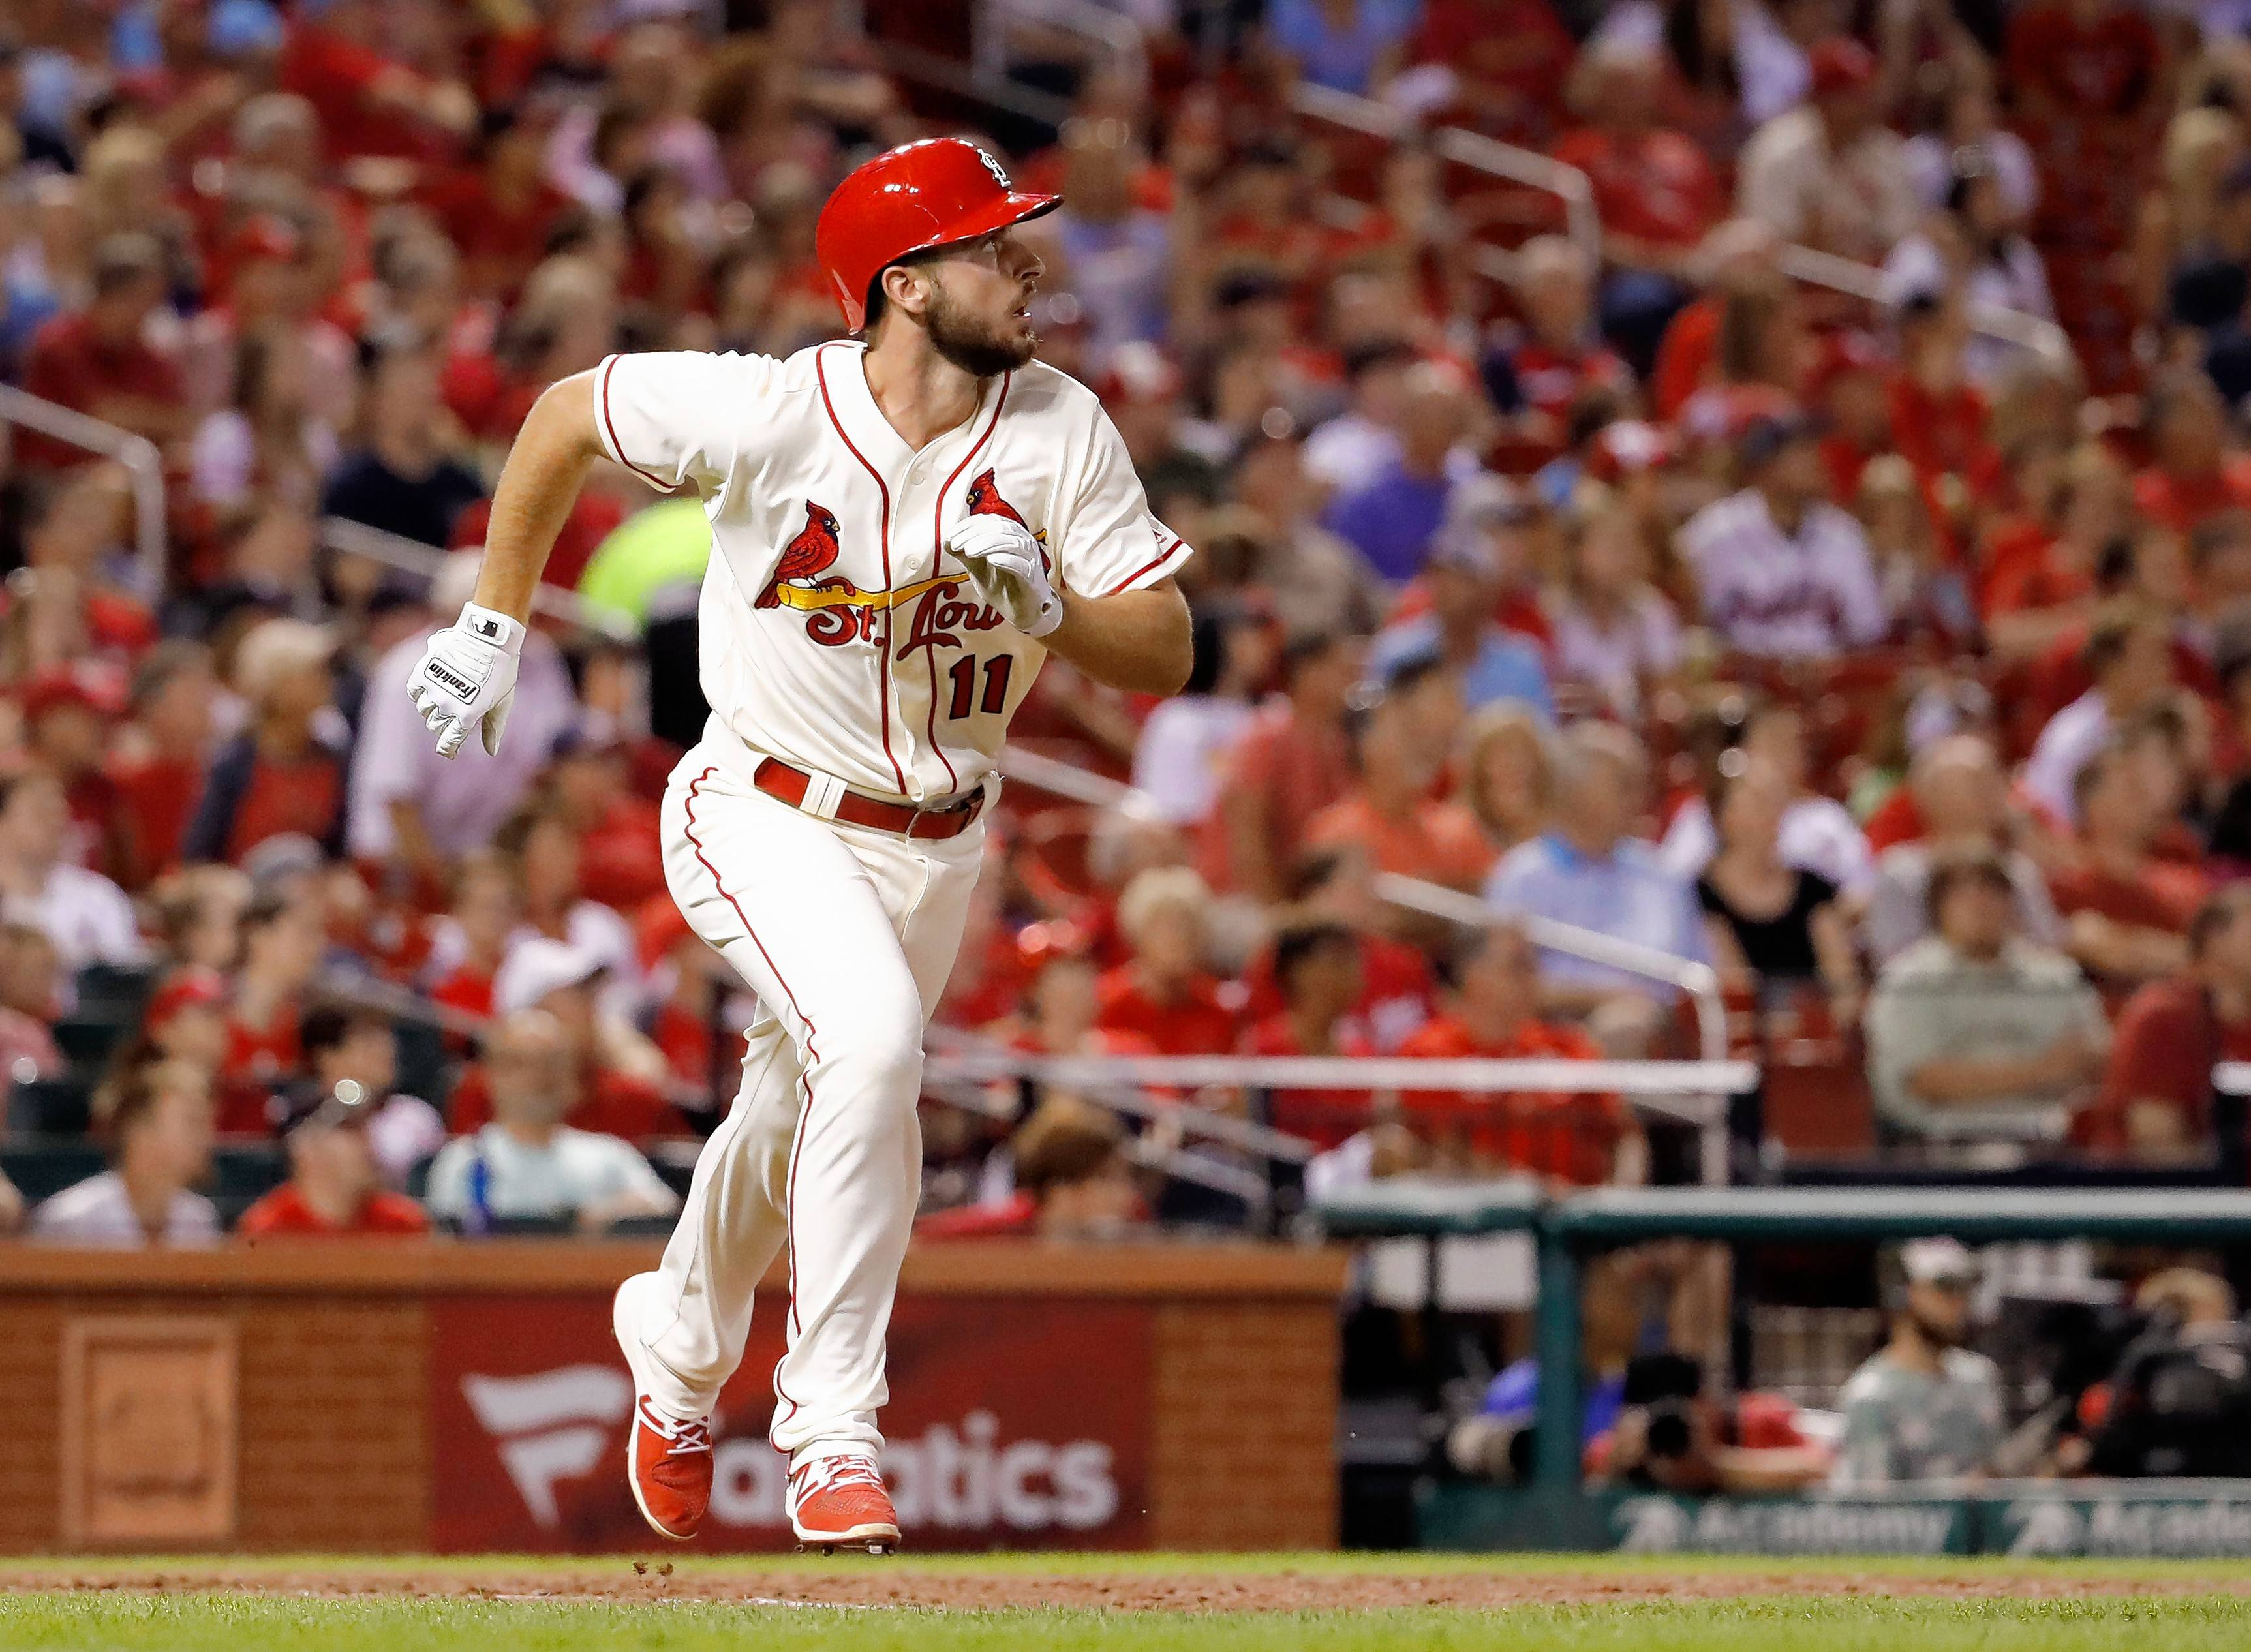 St. Louis Cardinals' Paul DeJong watches his solo home run during the seventh inning of a baseball game against the Atlanta Braves Saturday, Aug. 12, 2017, in St. Louis. (AP Photo/Jeff Roberson)